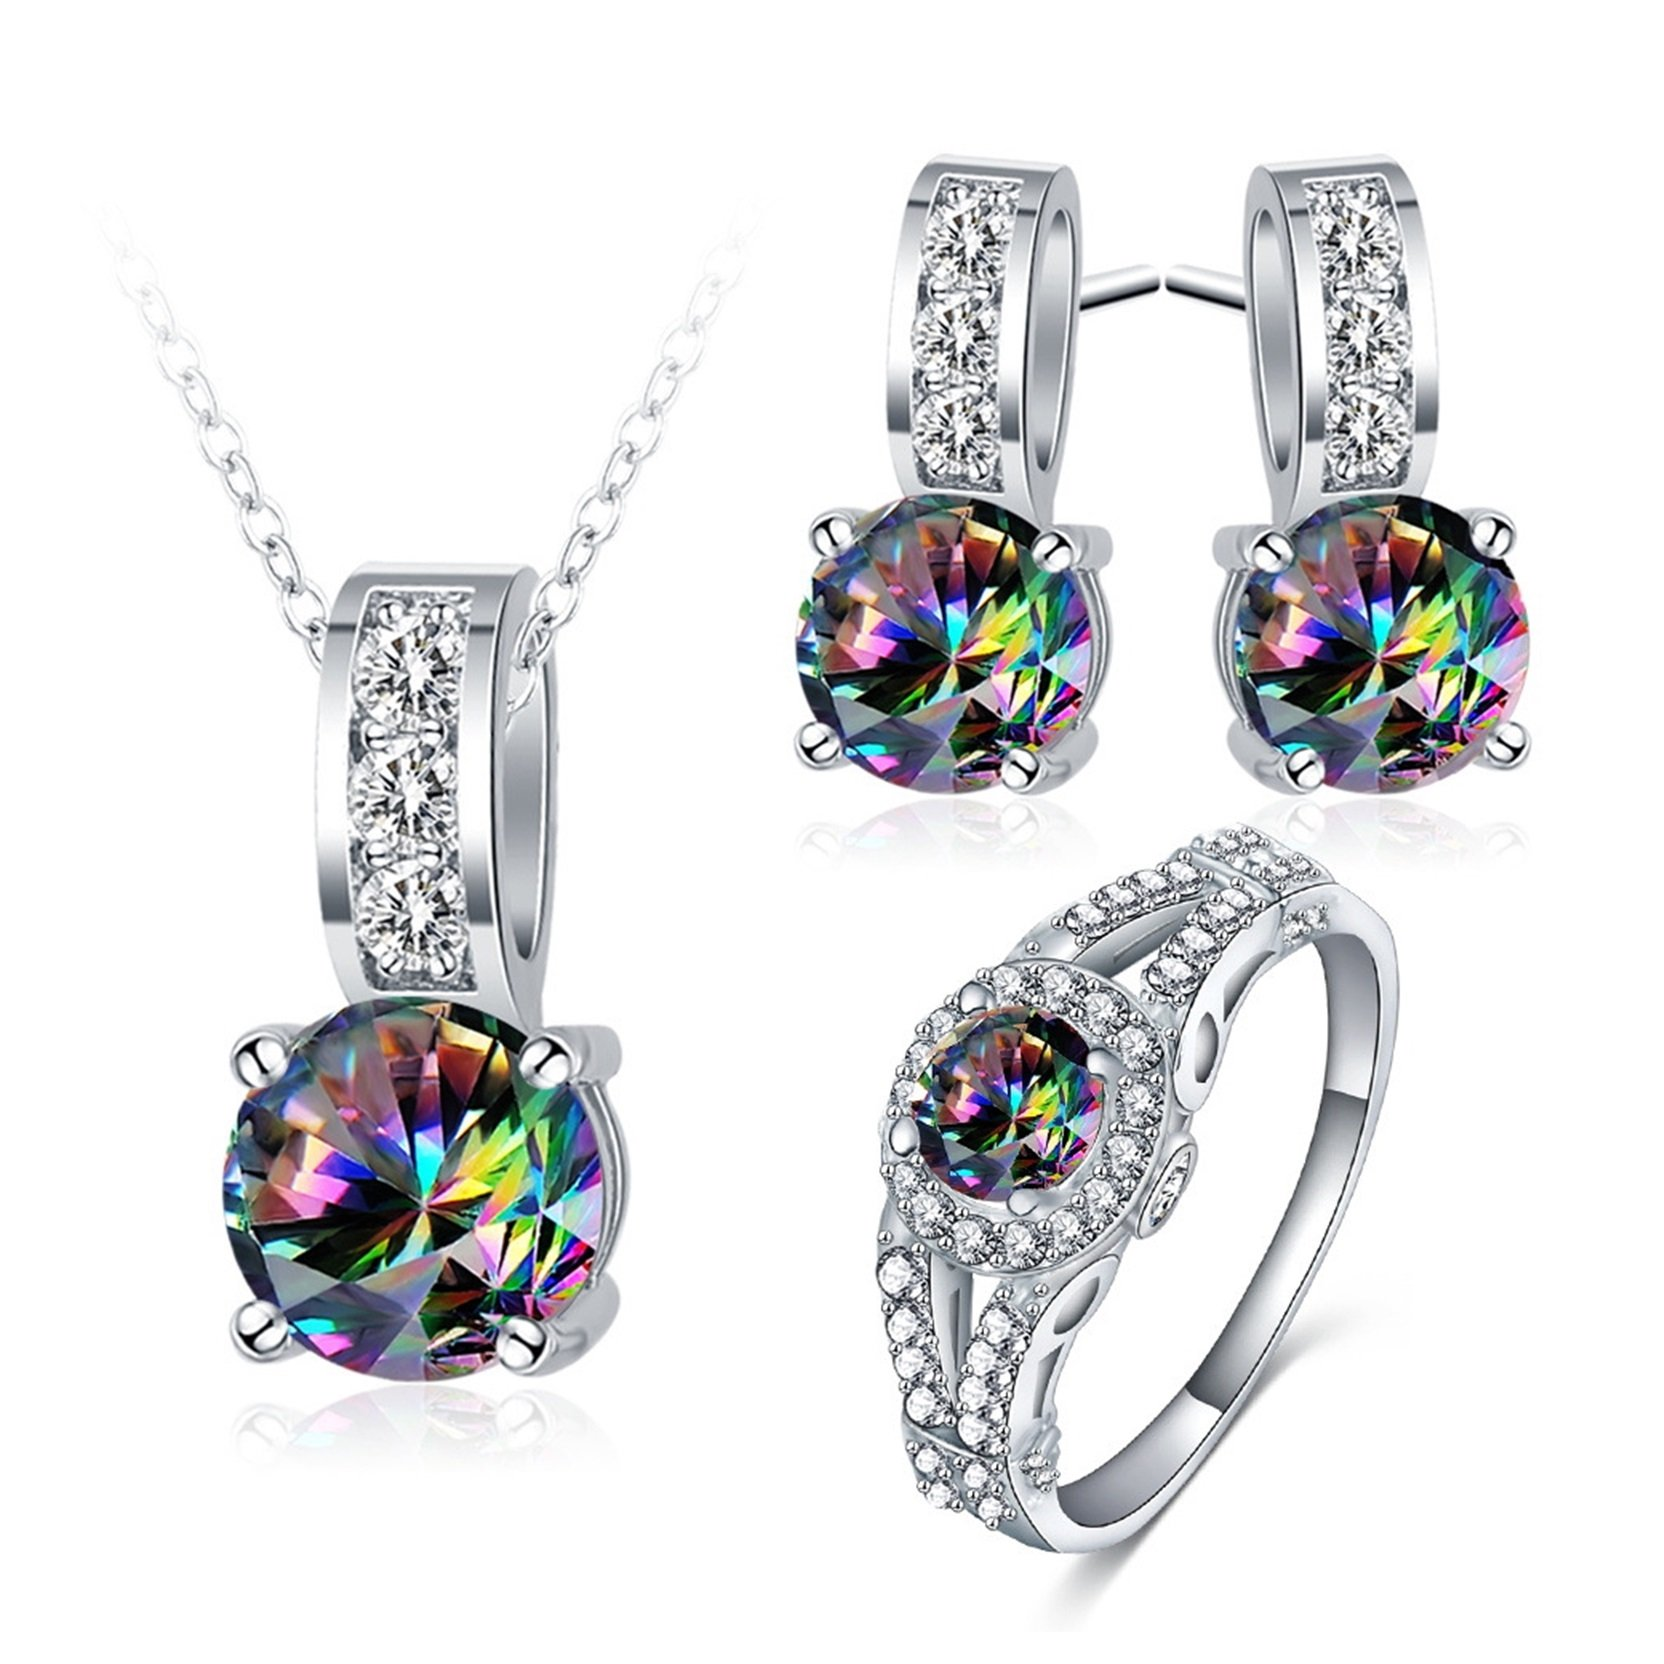 MoAndy Women Necklace Earrings Wedding Ring Bands Jewelry Set Colorful Cubic Zirconia Size 8